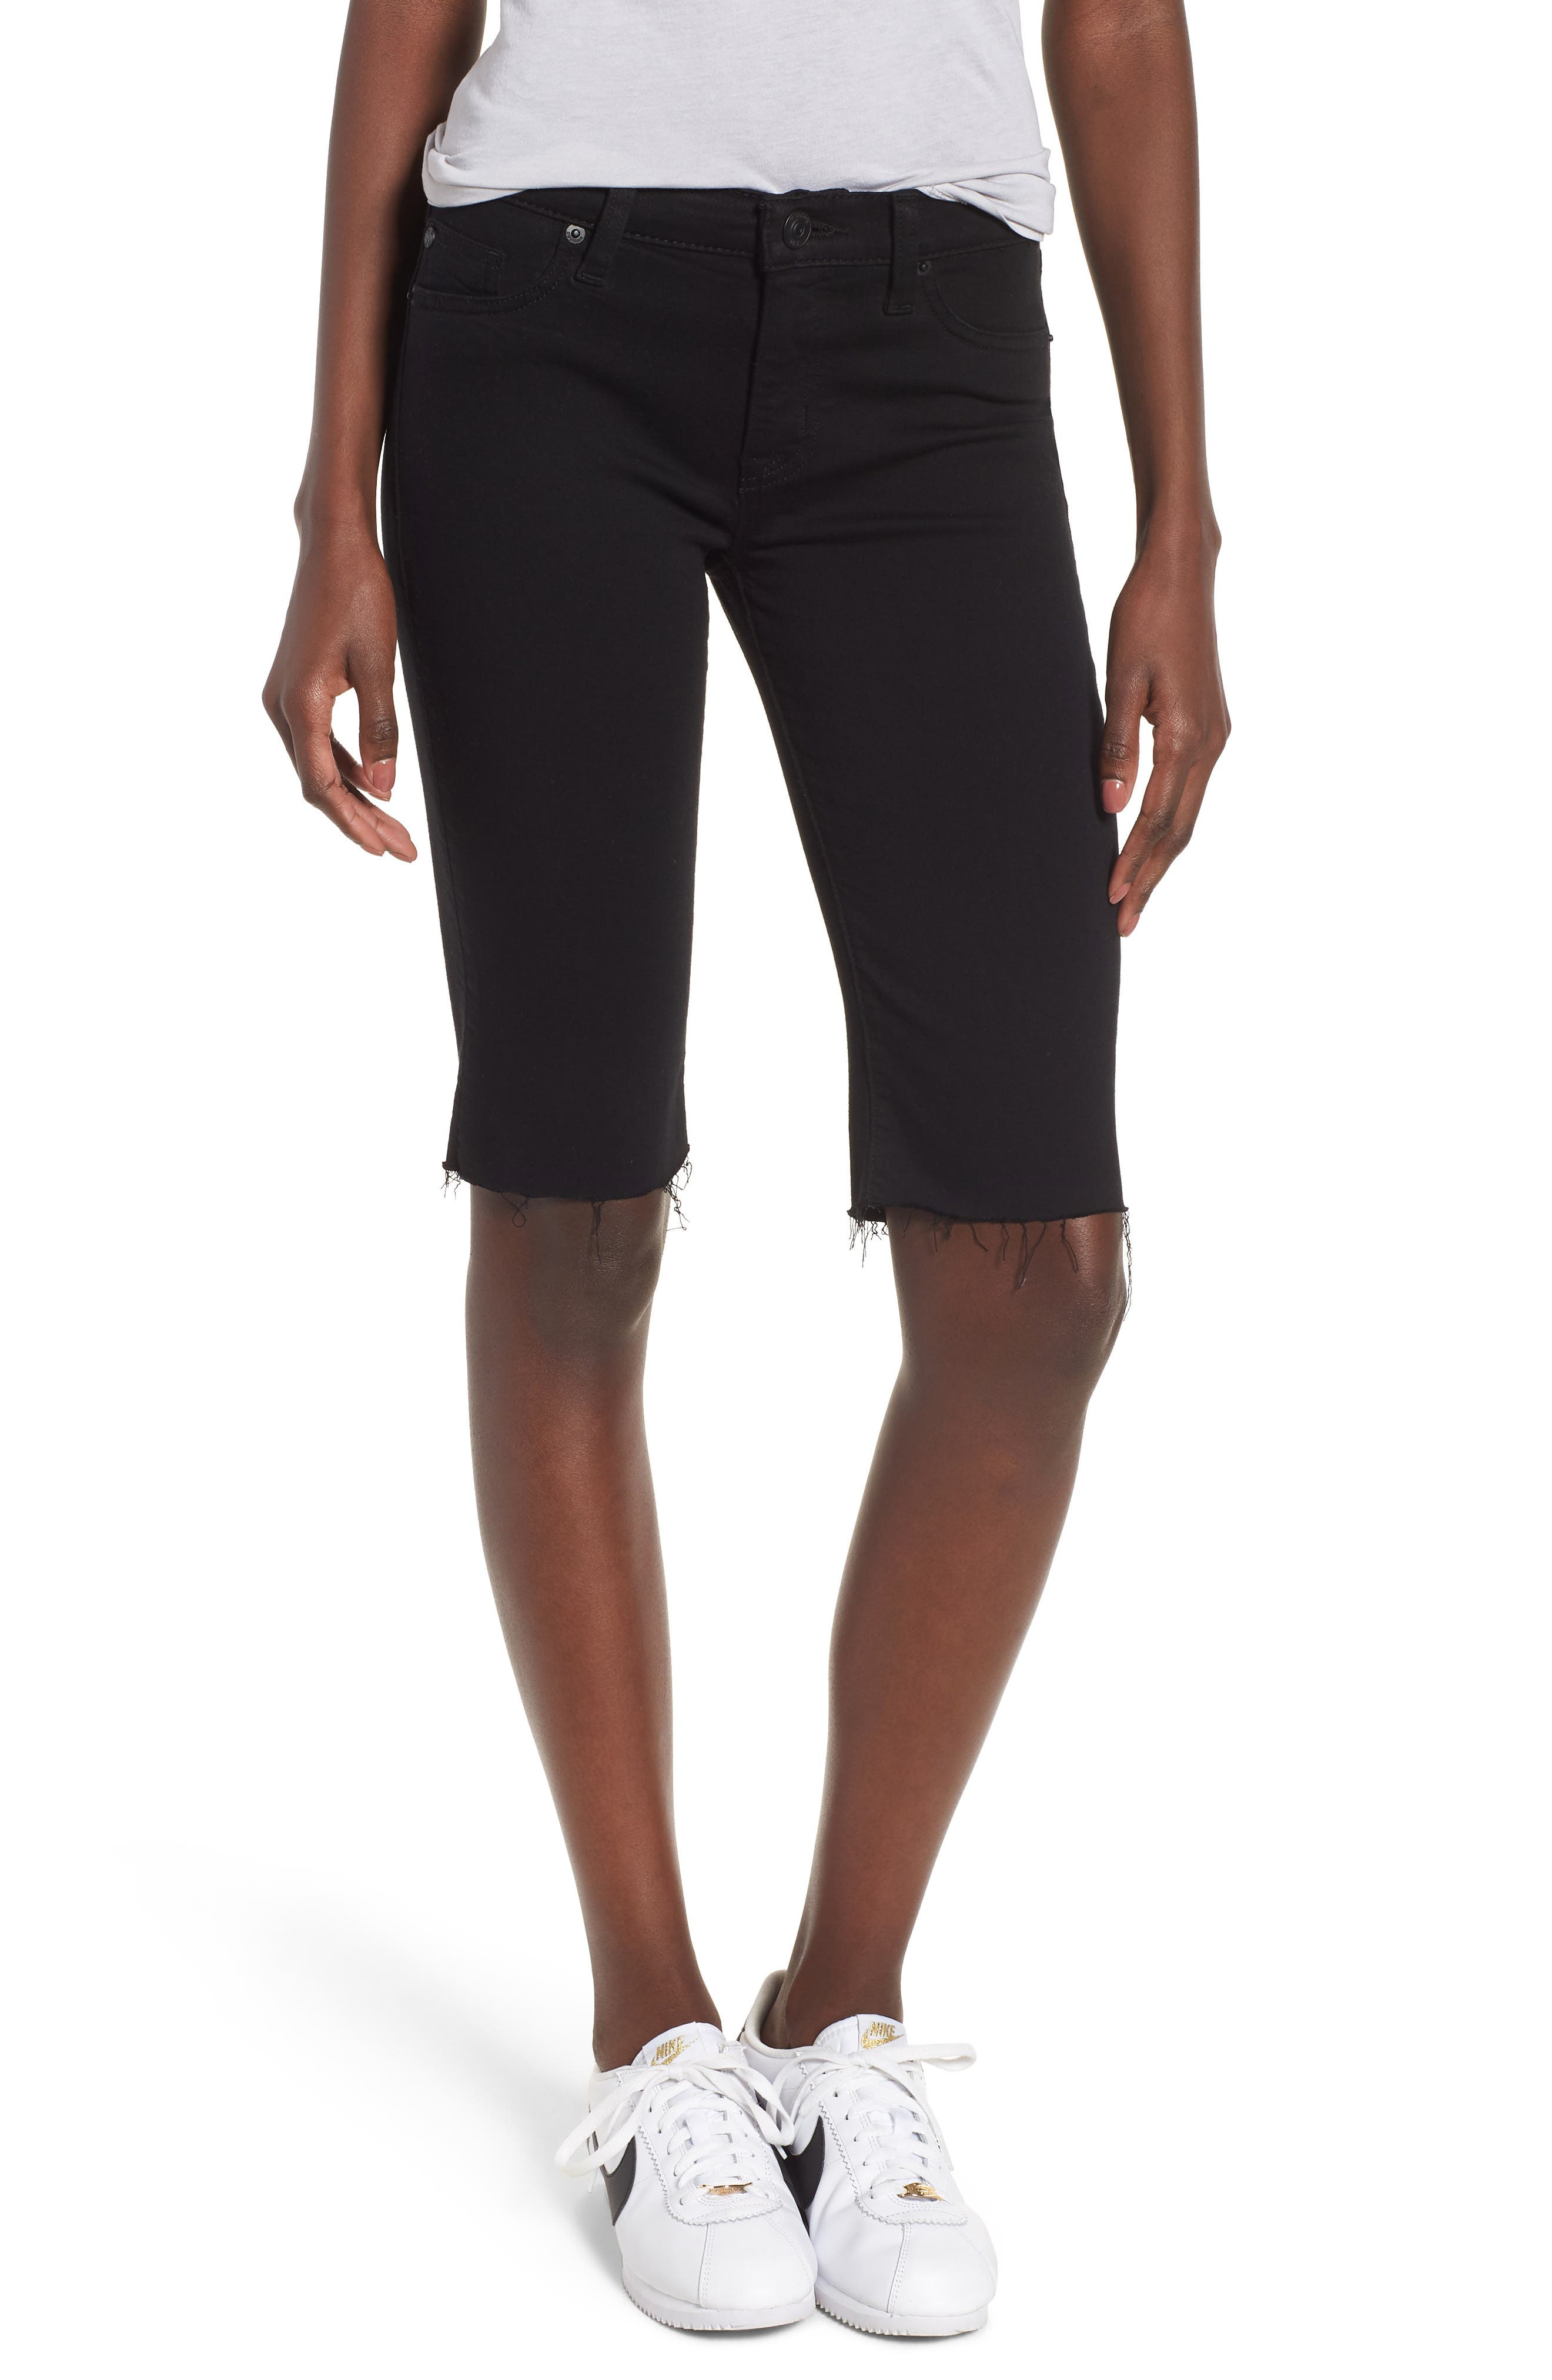 Amelia Cutoff Knee Shorts,                             Main thumbnail 1, color,                             BLACK